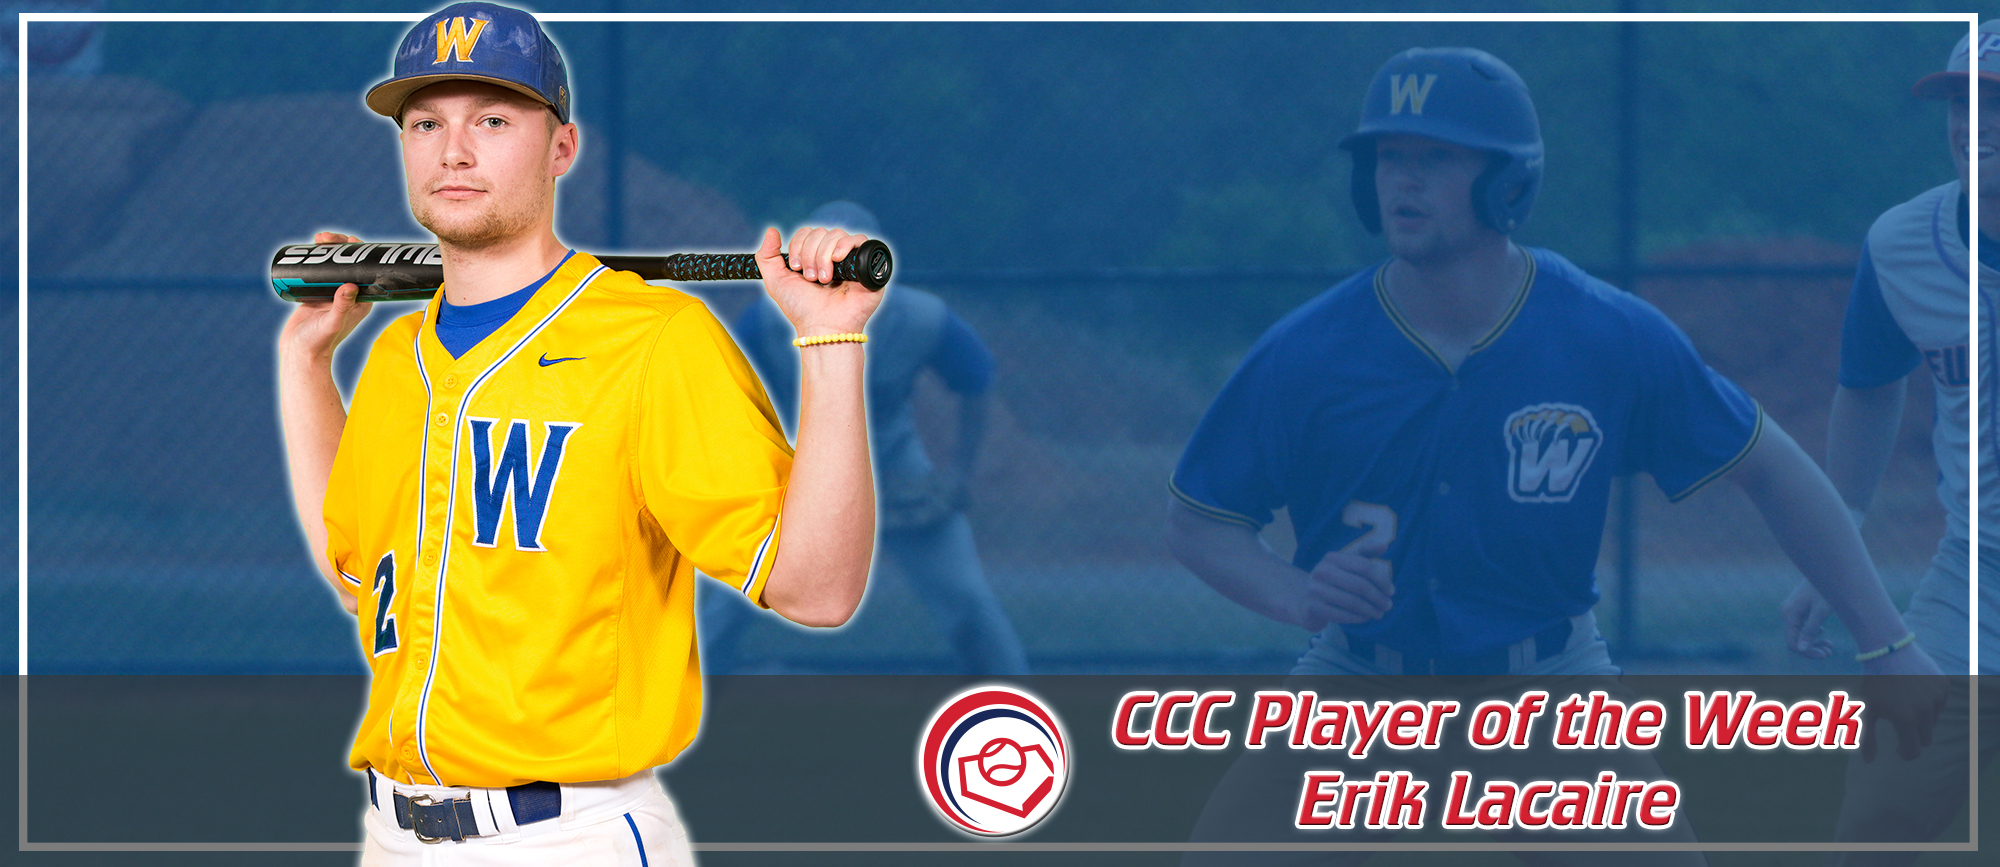 Erik Lacaire Named CCC Player of the Week